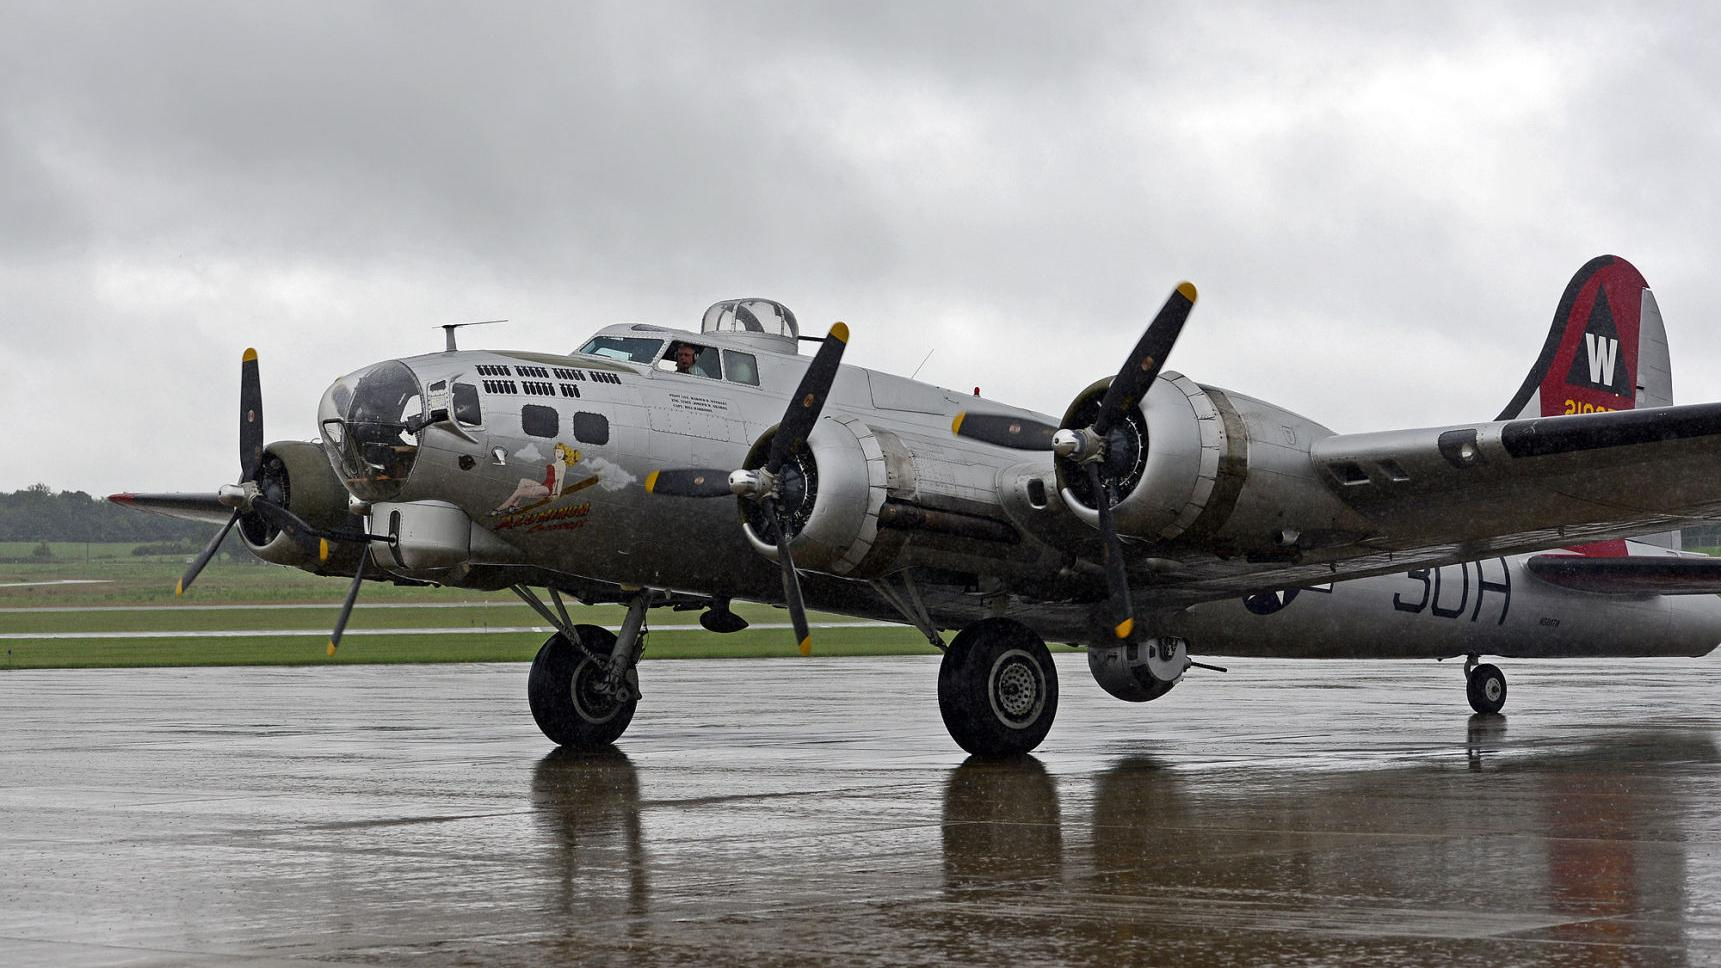 Take a tour or a ride inside a B-17 bomber in Mount Vernon ...